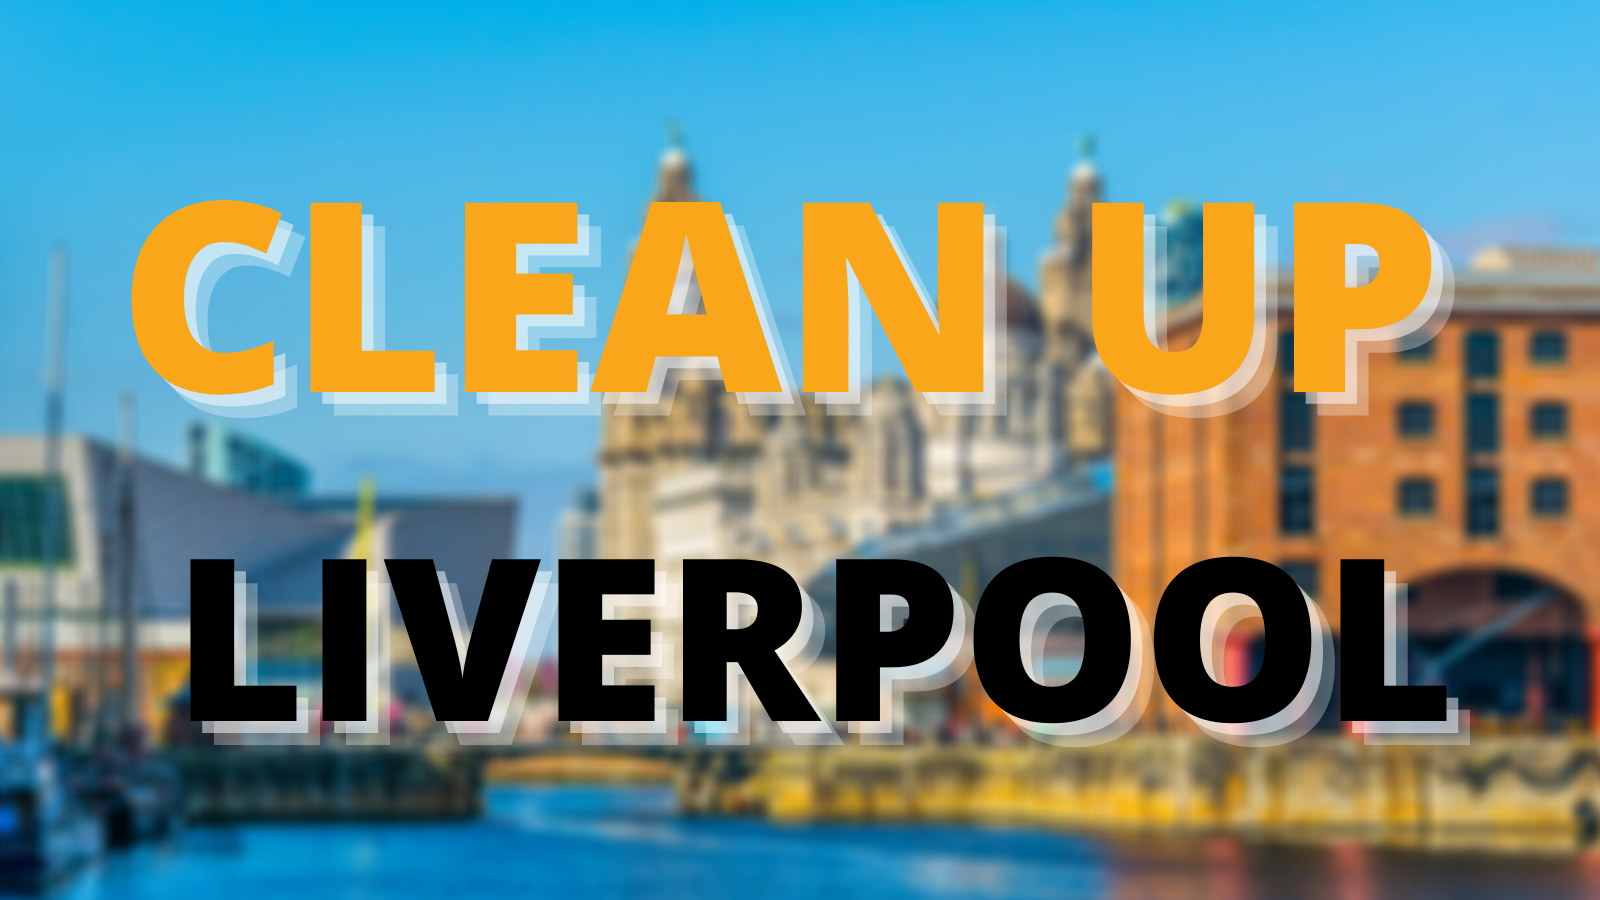 It's time for change in Liverpool